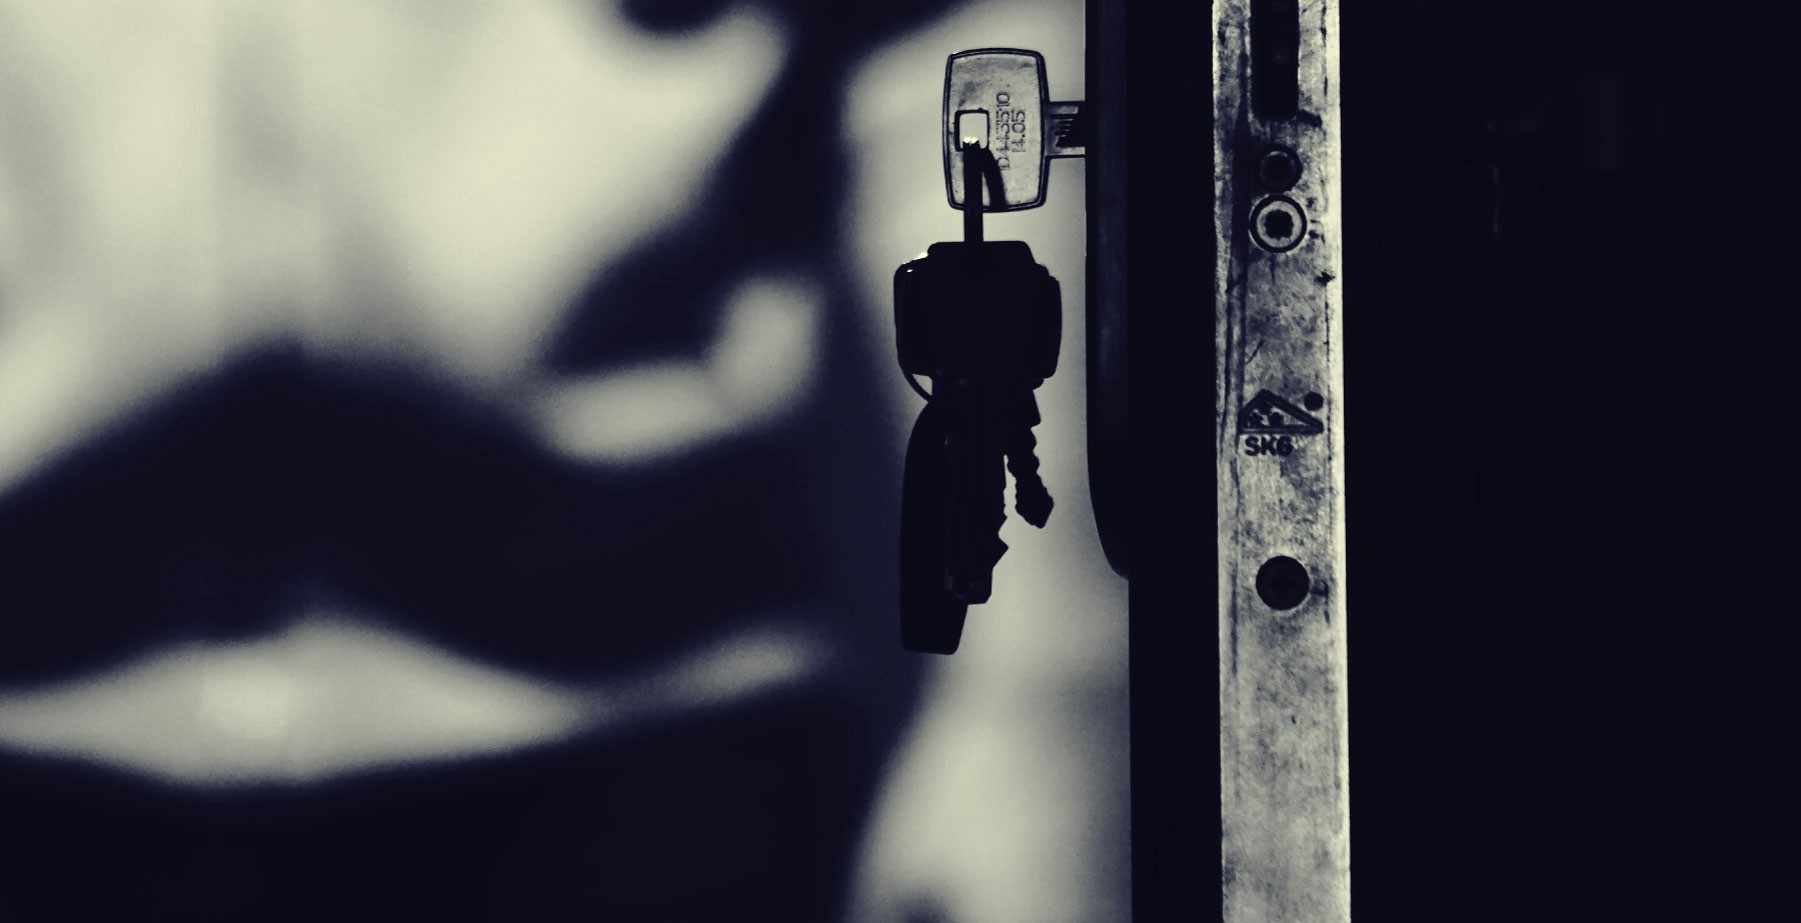 dark door with keys hanging from the lock a shadowy figure in the back